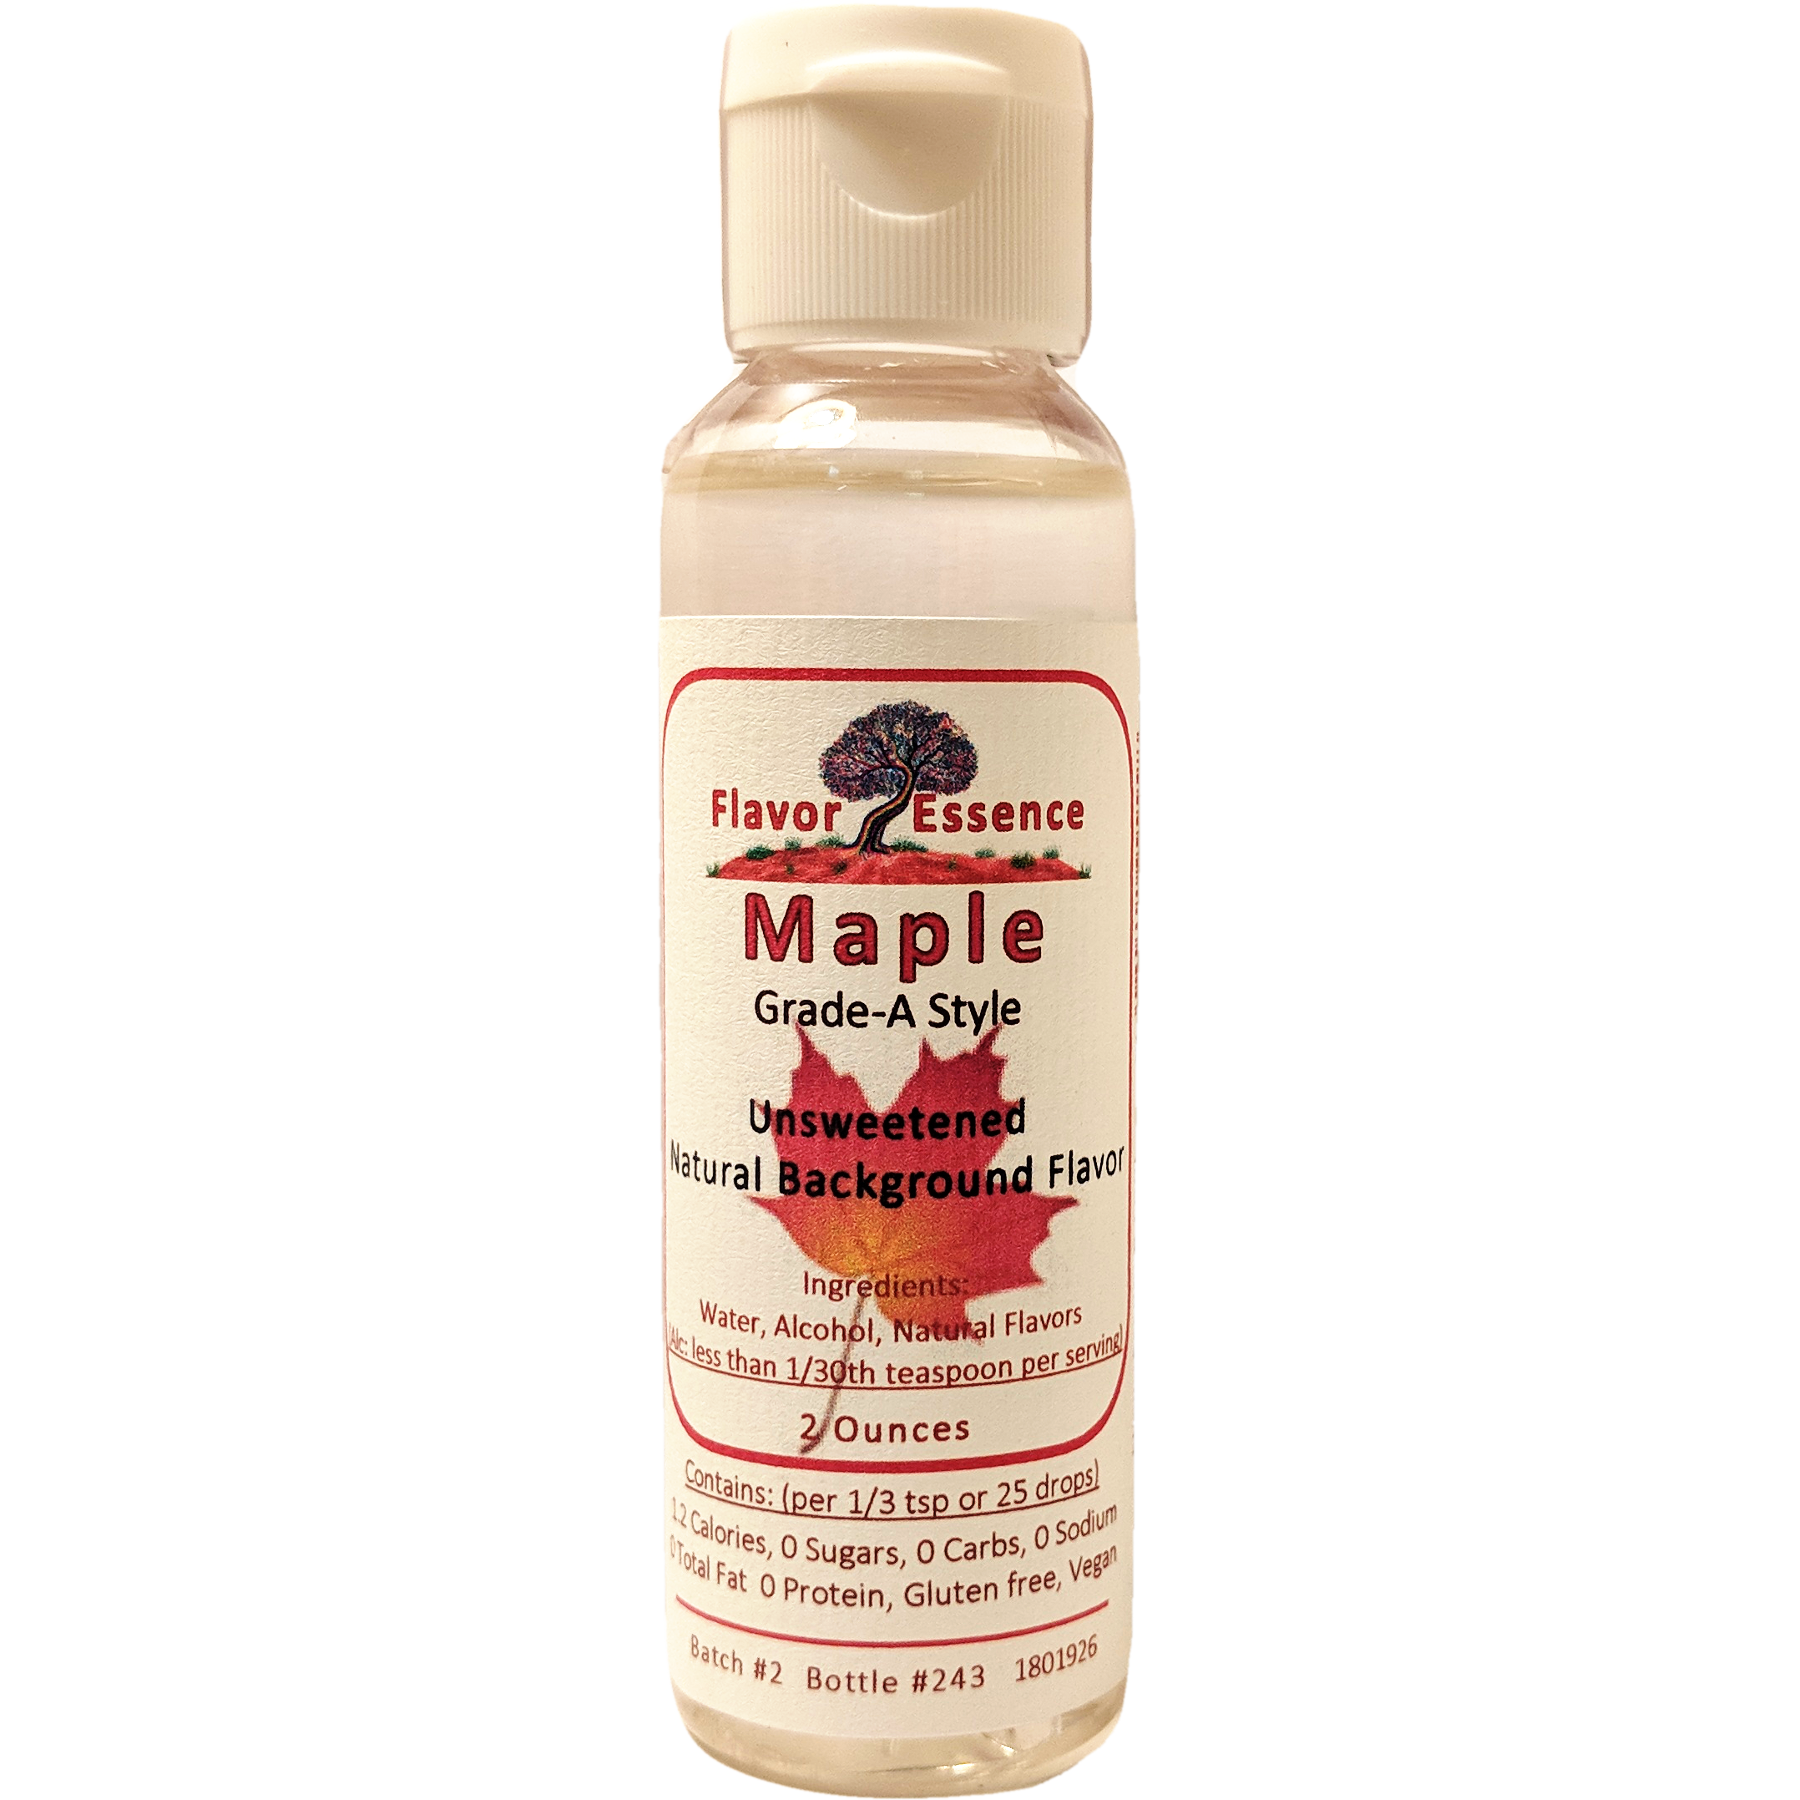 MAPLE (Grade-A Style) Unsweetened Natural Flavoring MAP-